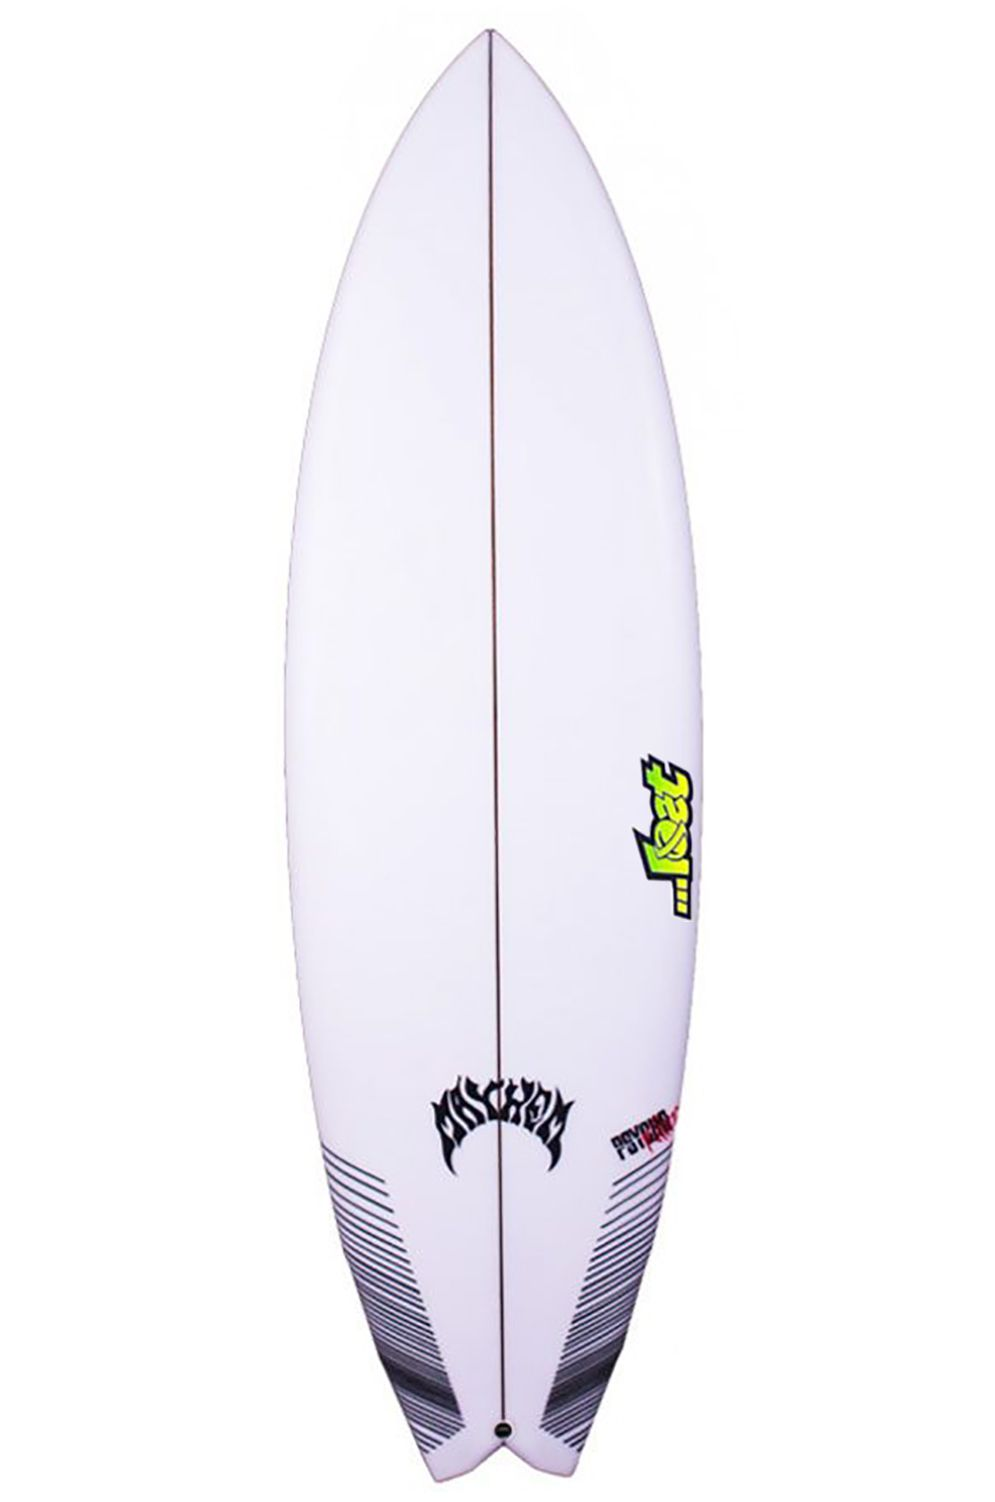 Prancha Surf Lost 5'10 PSYCHO KILLER Swallow Tail - White FCS II Multisystem 5ft10